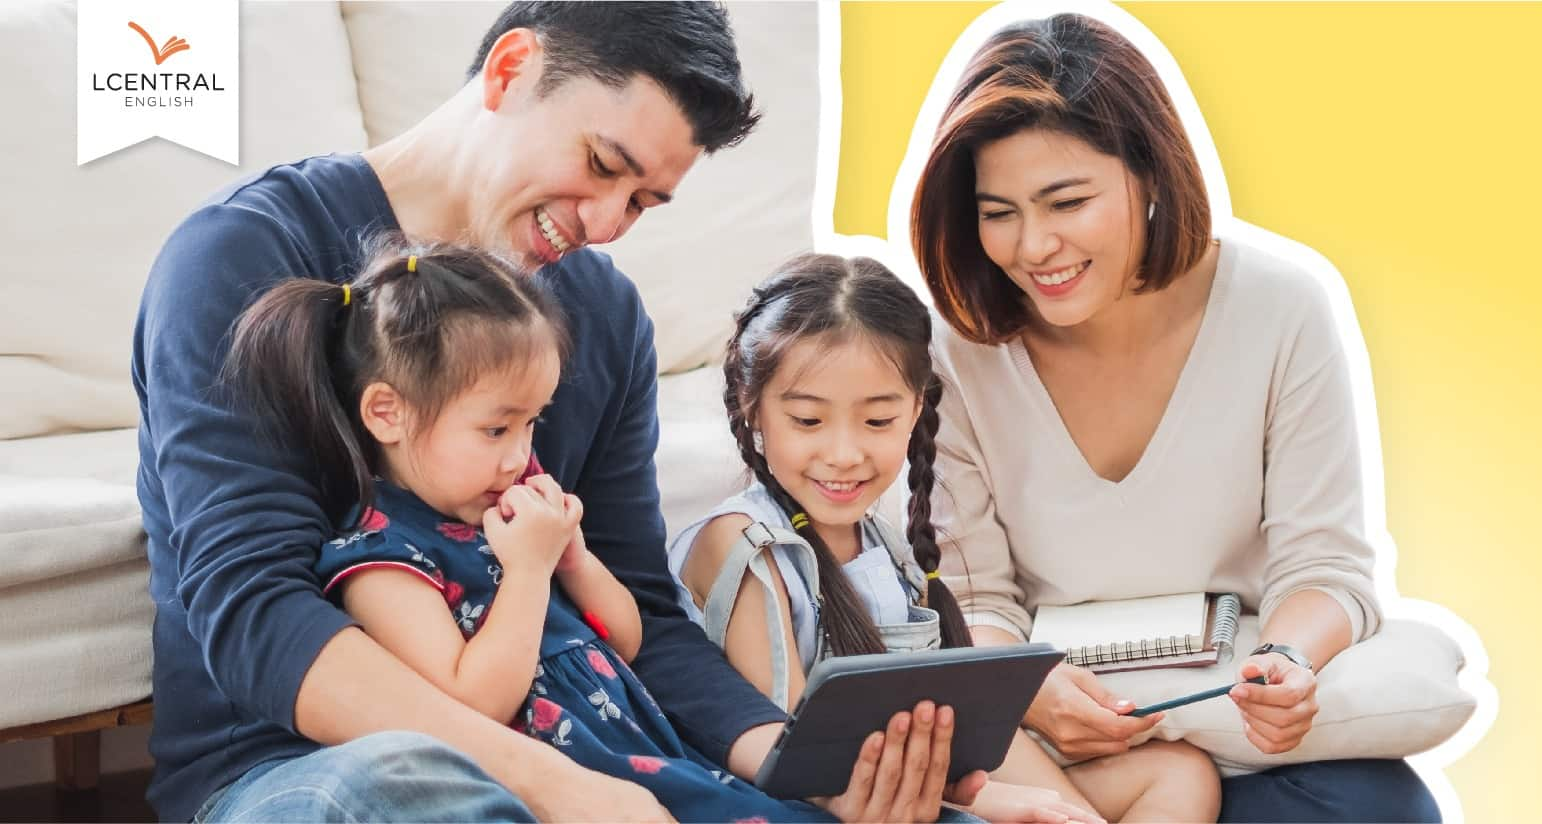 LCentral English Enrichment Tuition Singapore Developing Pre-reading Skills Language and Comprehension